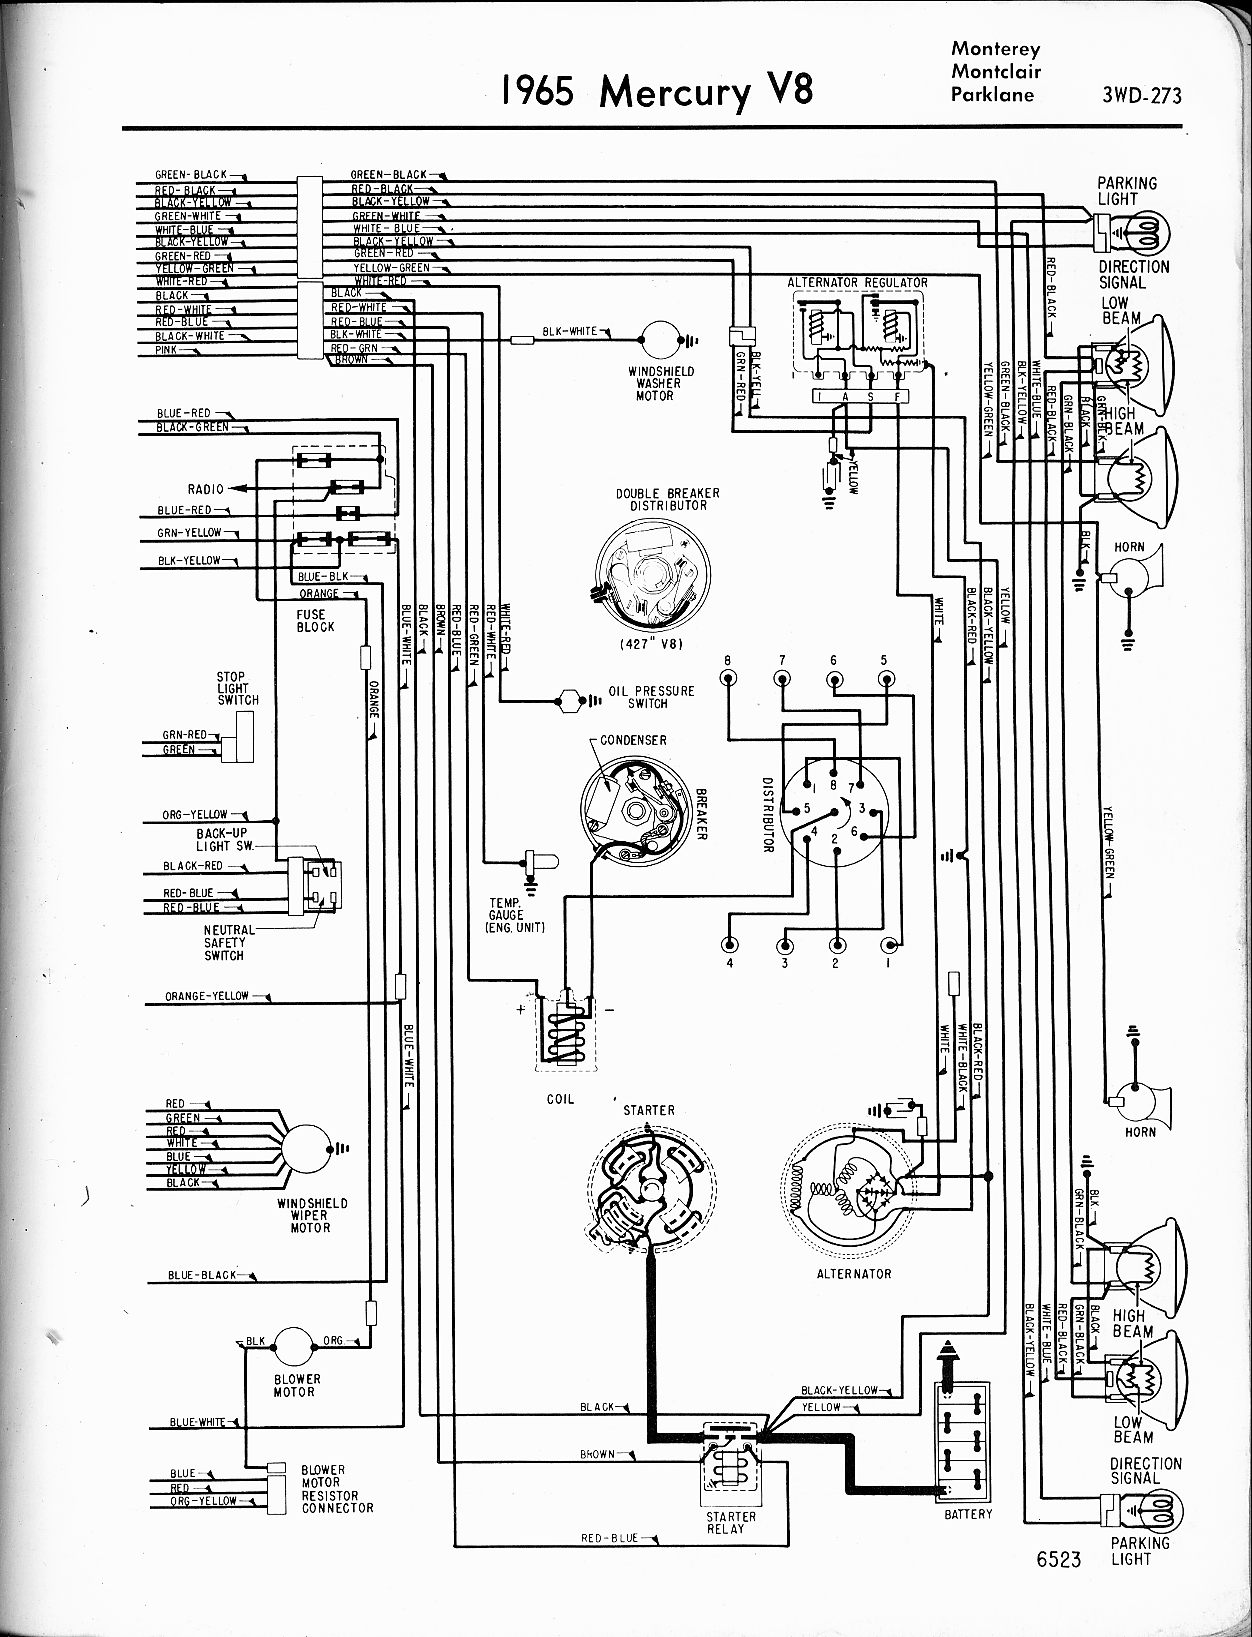 Mercury wiring diagrams - The Old Car Manual Project on 1950 mercury speaker, 1950 mercury wheels, 1950 mercury wiring harness, 1950 ford headlight switch diagram, 1950 mercury horn, 1950 mercury schematic, 1950 mercury carburetor, 1950 mercury frame, 1950 mercury rear suspension, 1950 mercury engine, 1950 mercury air conditioning, 1950 mercury brakes, ford steering box diagram, 1950 ford light switch diagram, 1950 mercury chassis, 1950 mercury speedometer, 1950 mercury body, 1950 mercury door, ford flathead distributor diagram, ignition switch diagram,